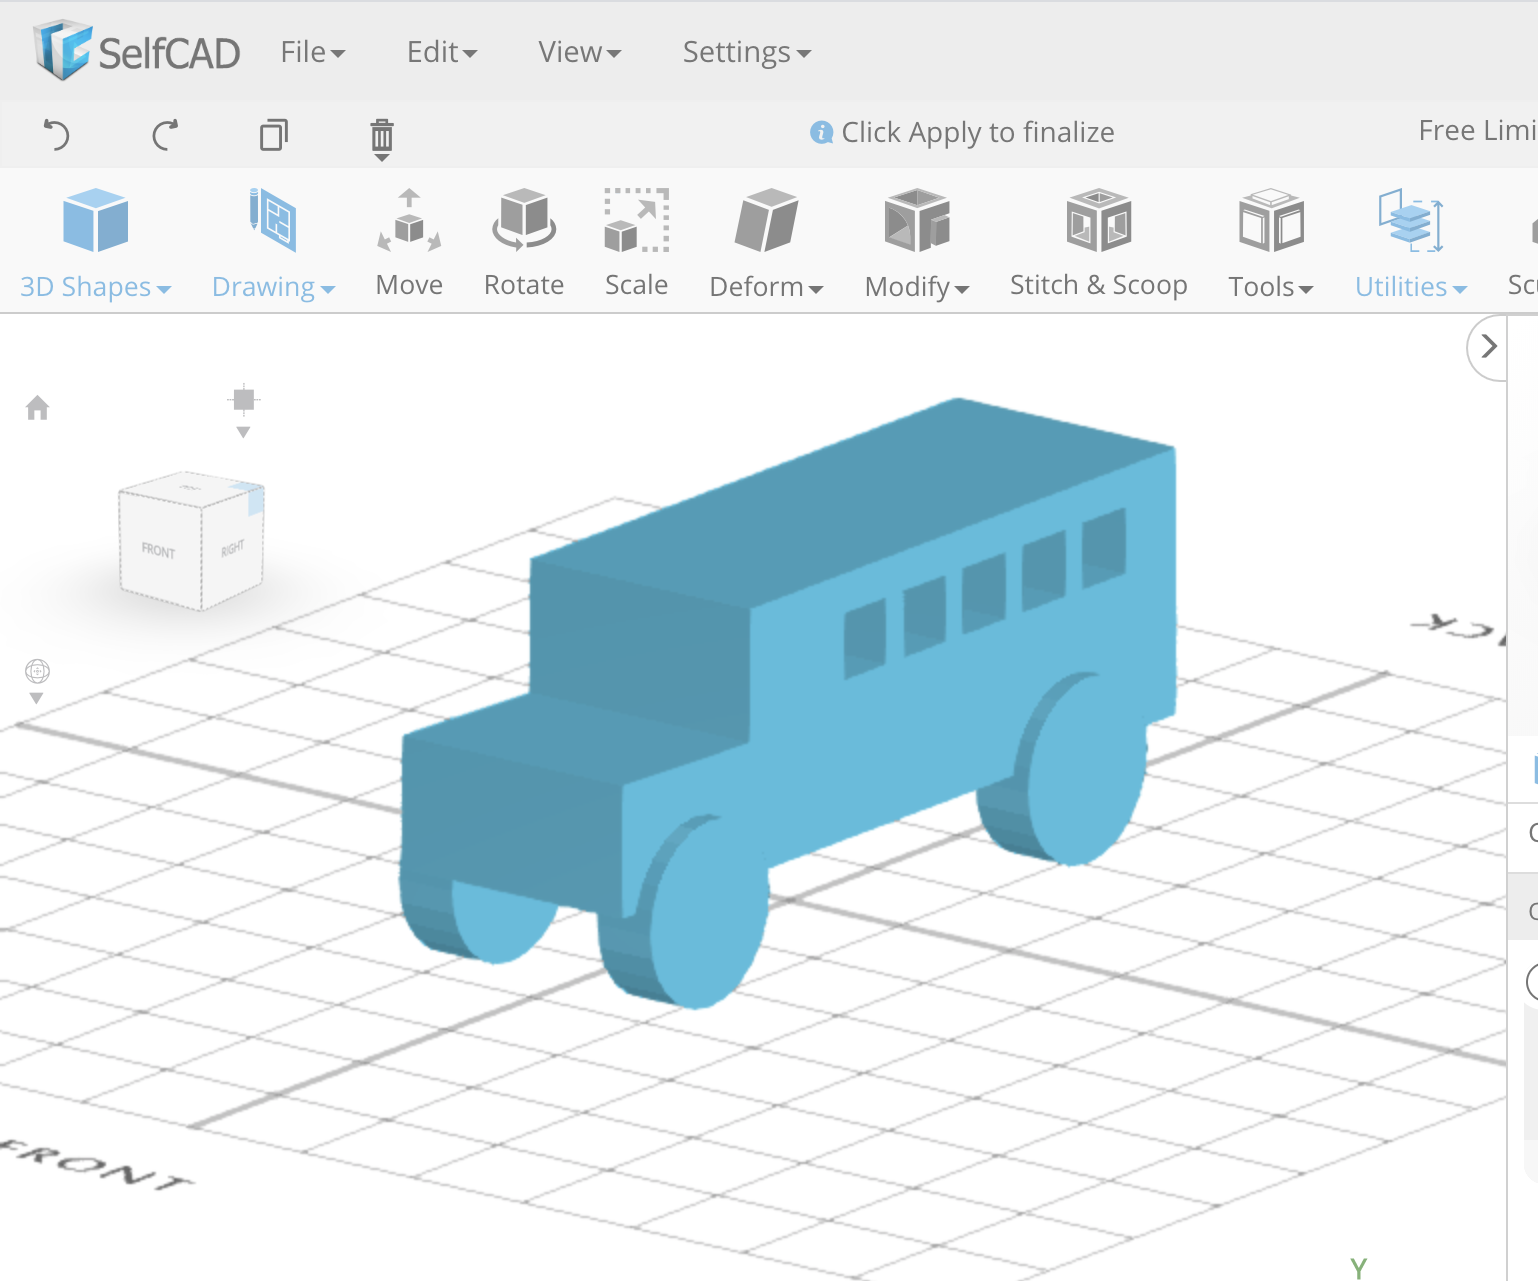 Learn SelfCAD- an Online 3D Modeling Software: Designing a Bus